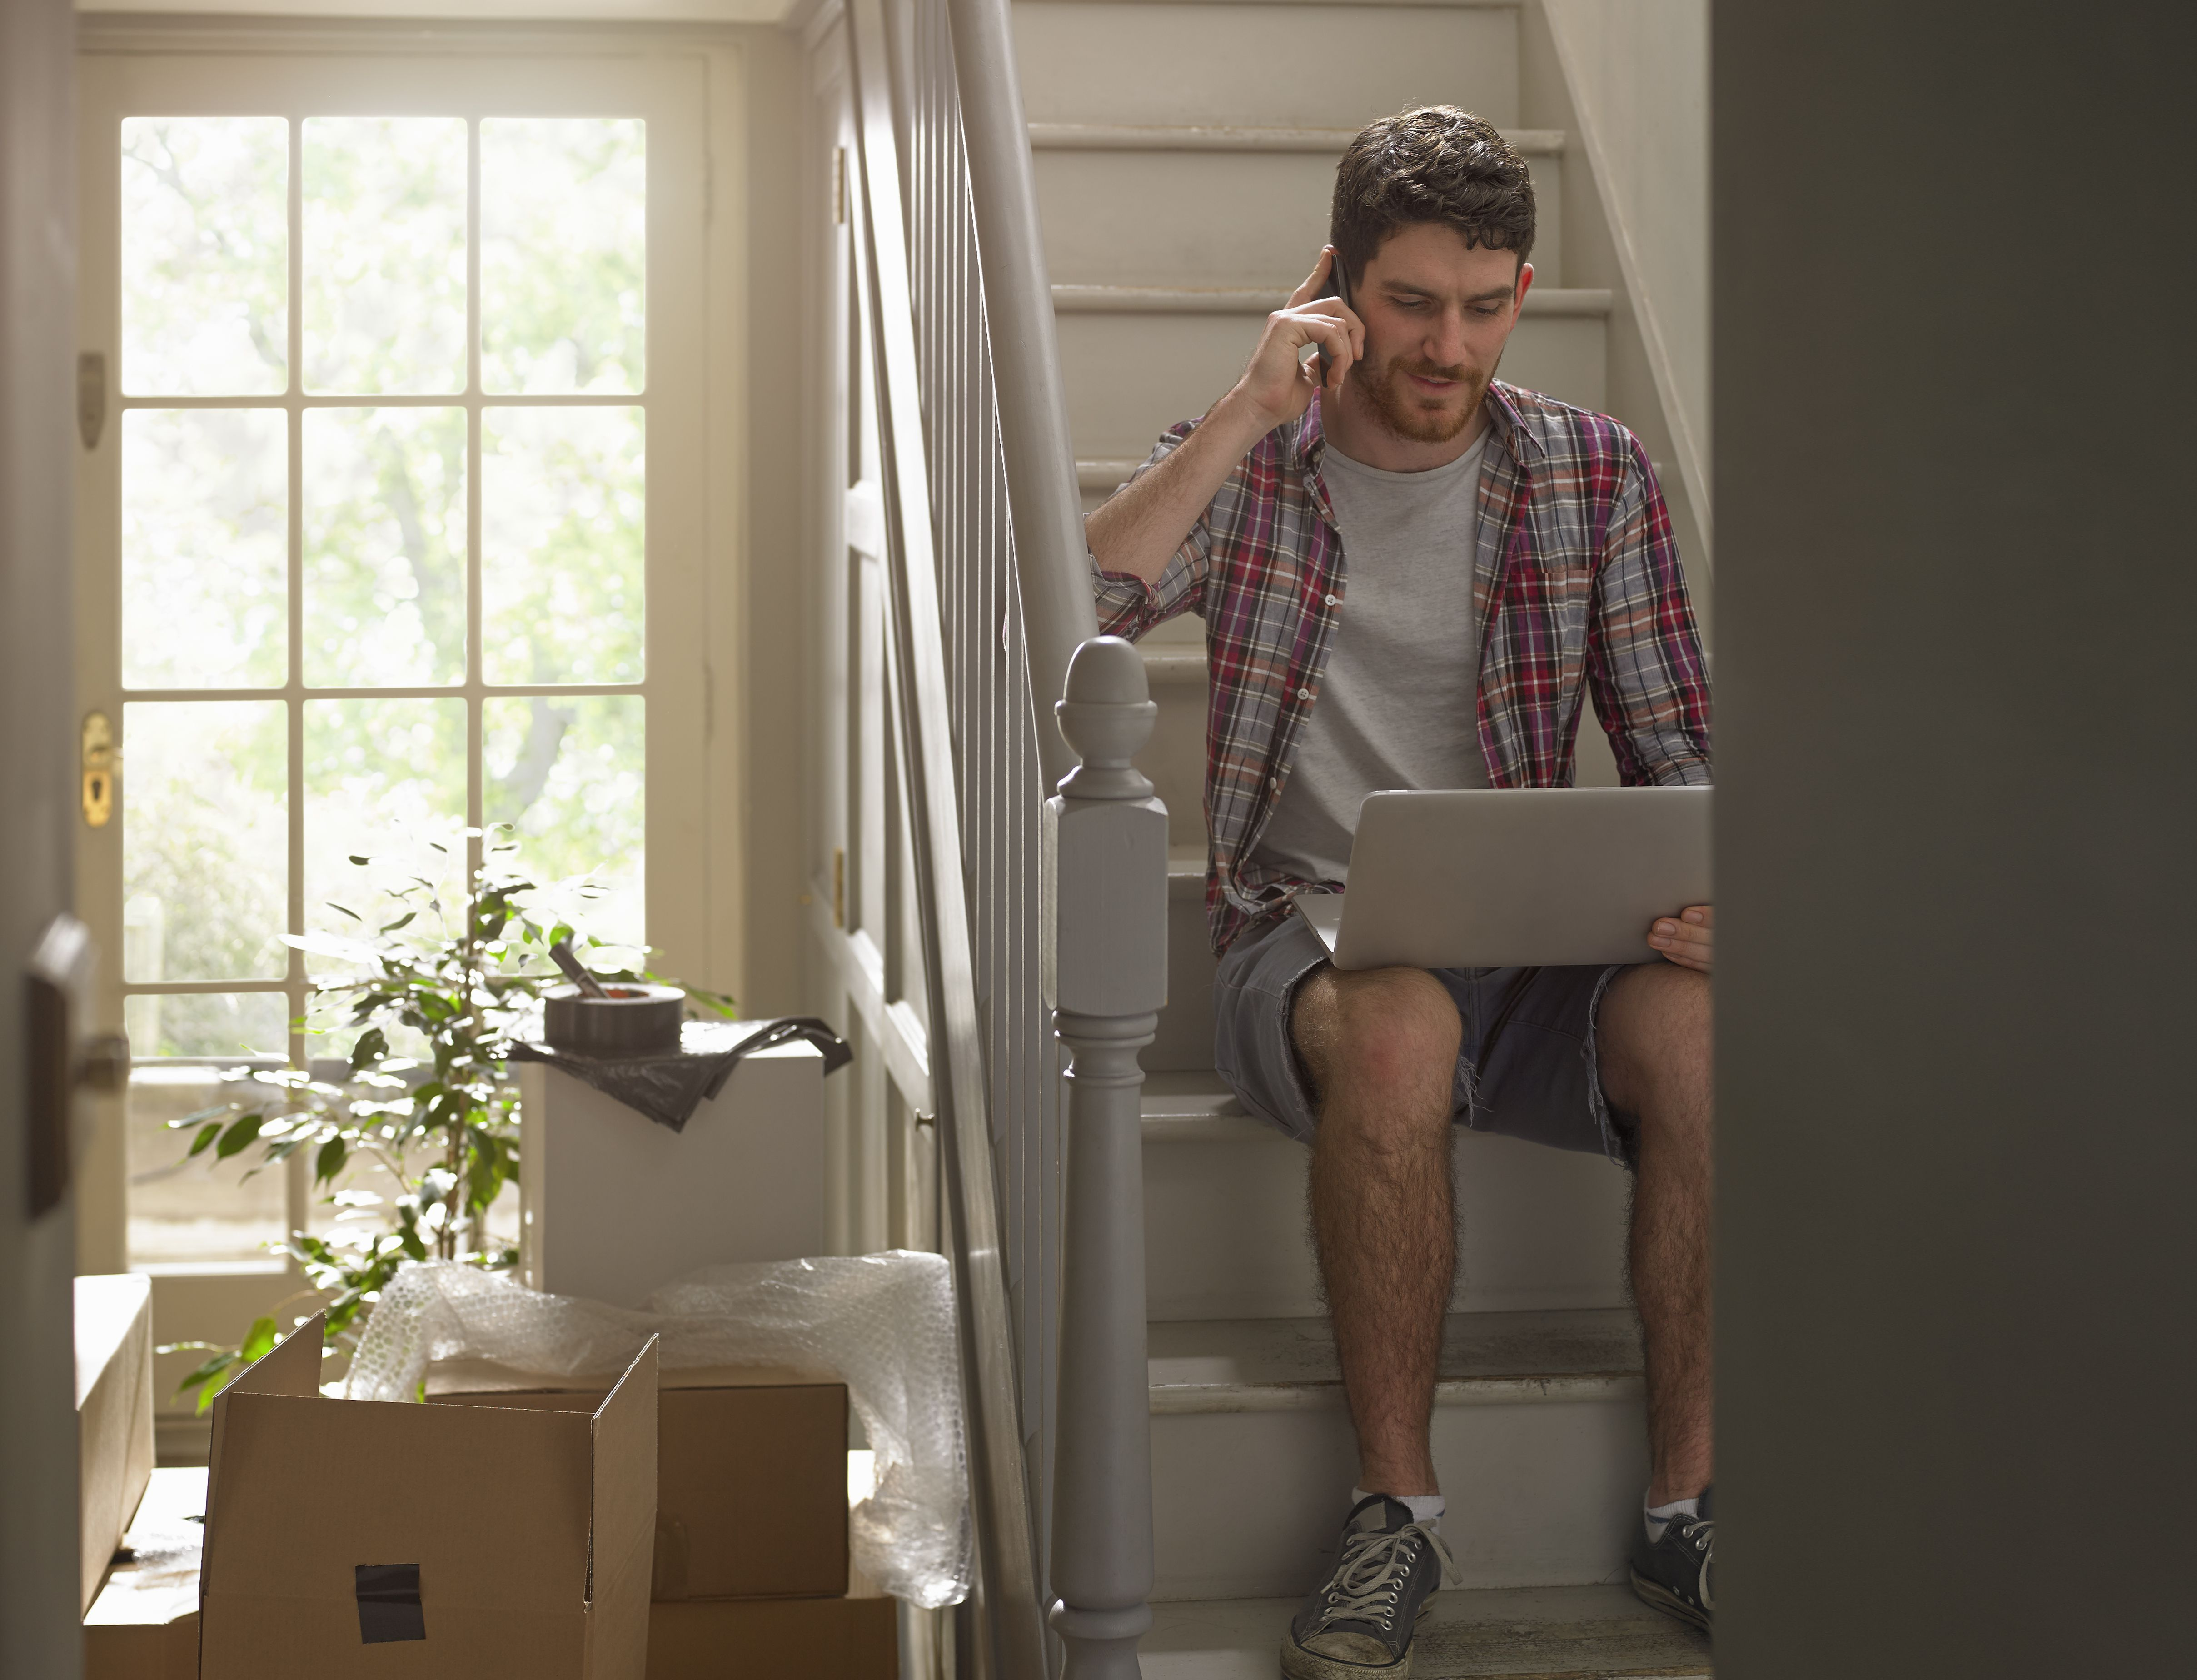 A man moving house working on phone and laptop